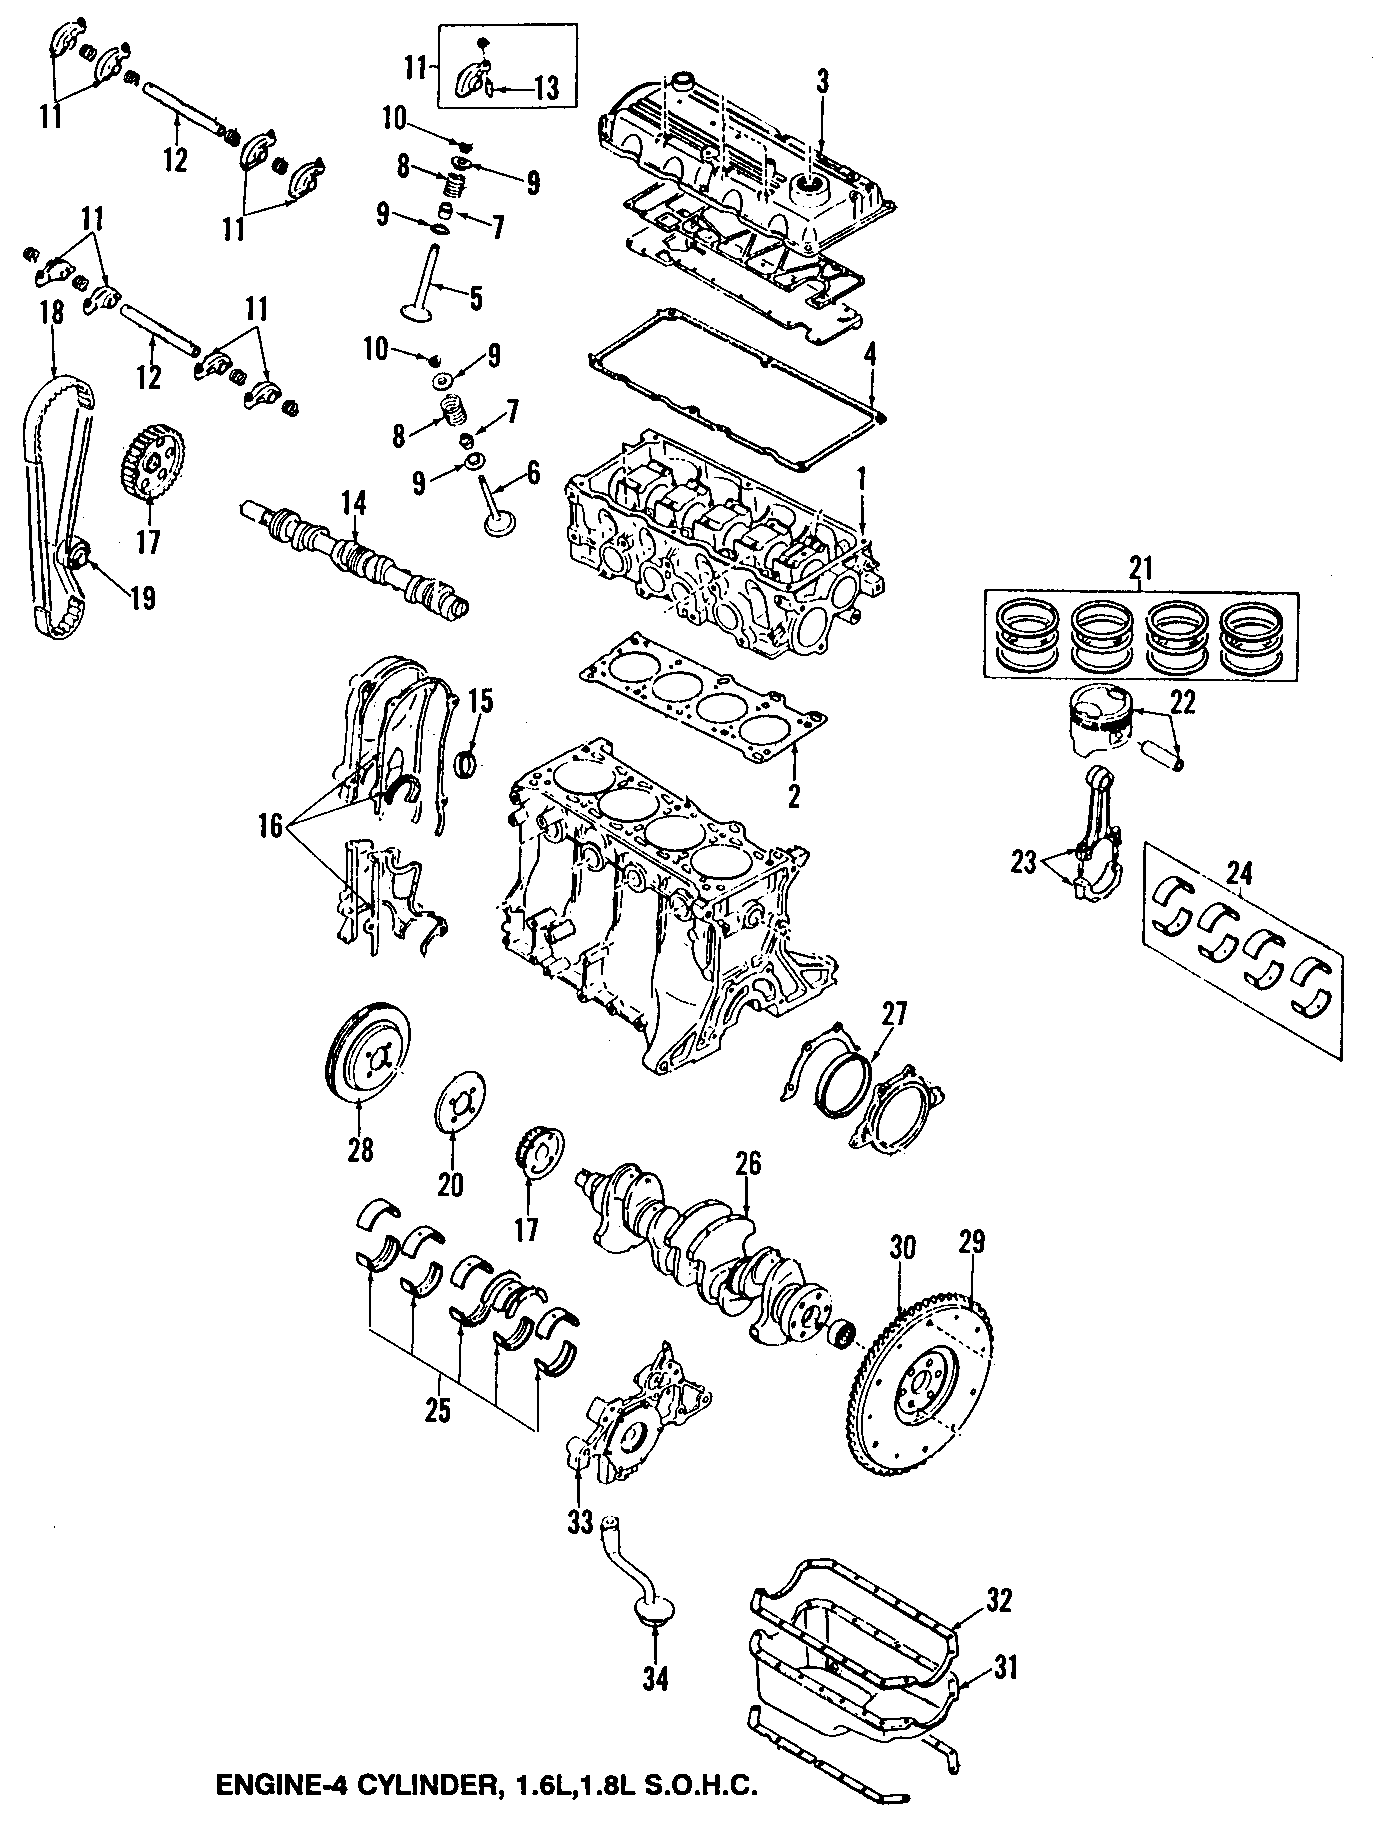 mazda protege engine diagram valves  mazda  auto wiring